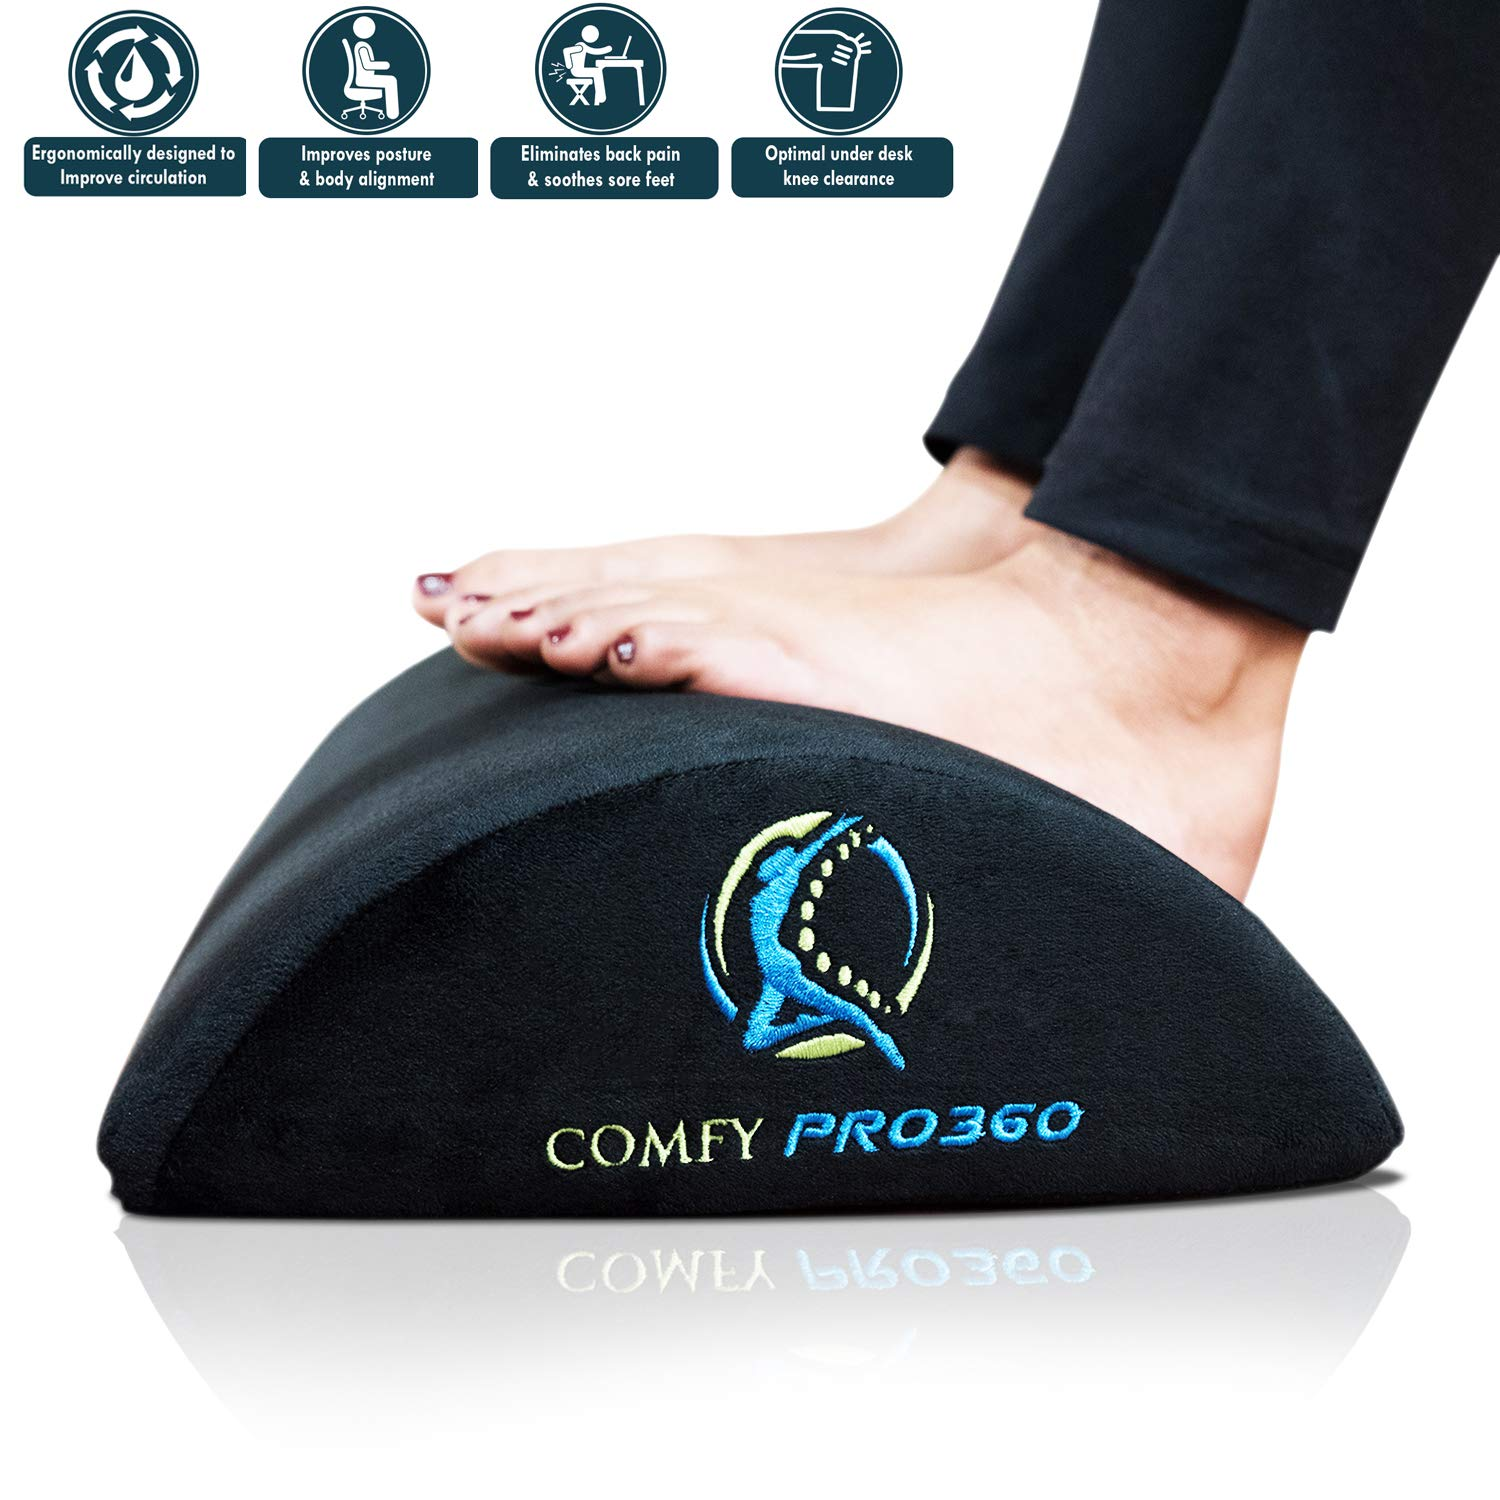 Comfy PRO360 – Foot Rest for Office or Home, Ergonomic Foam Cushion – Multiple Use for Foot, Back or Leg Rest – Non Slip Washable Upper Cover – Helps Reduce Leg or Knee Pain Stress.